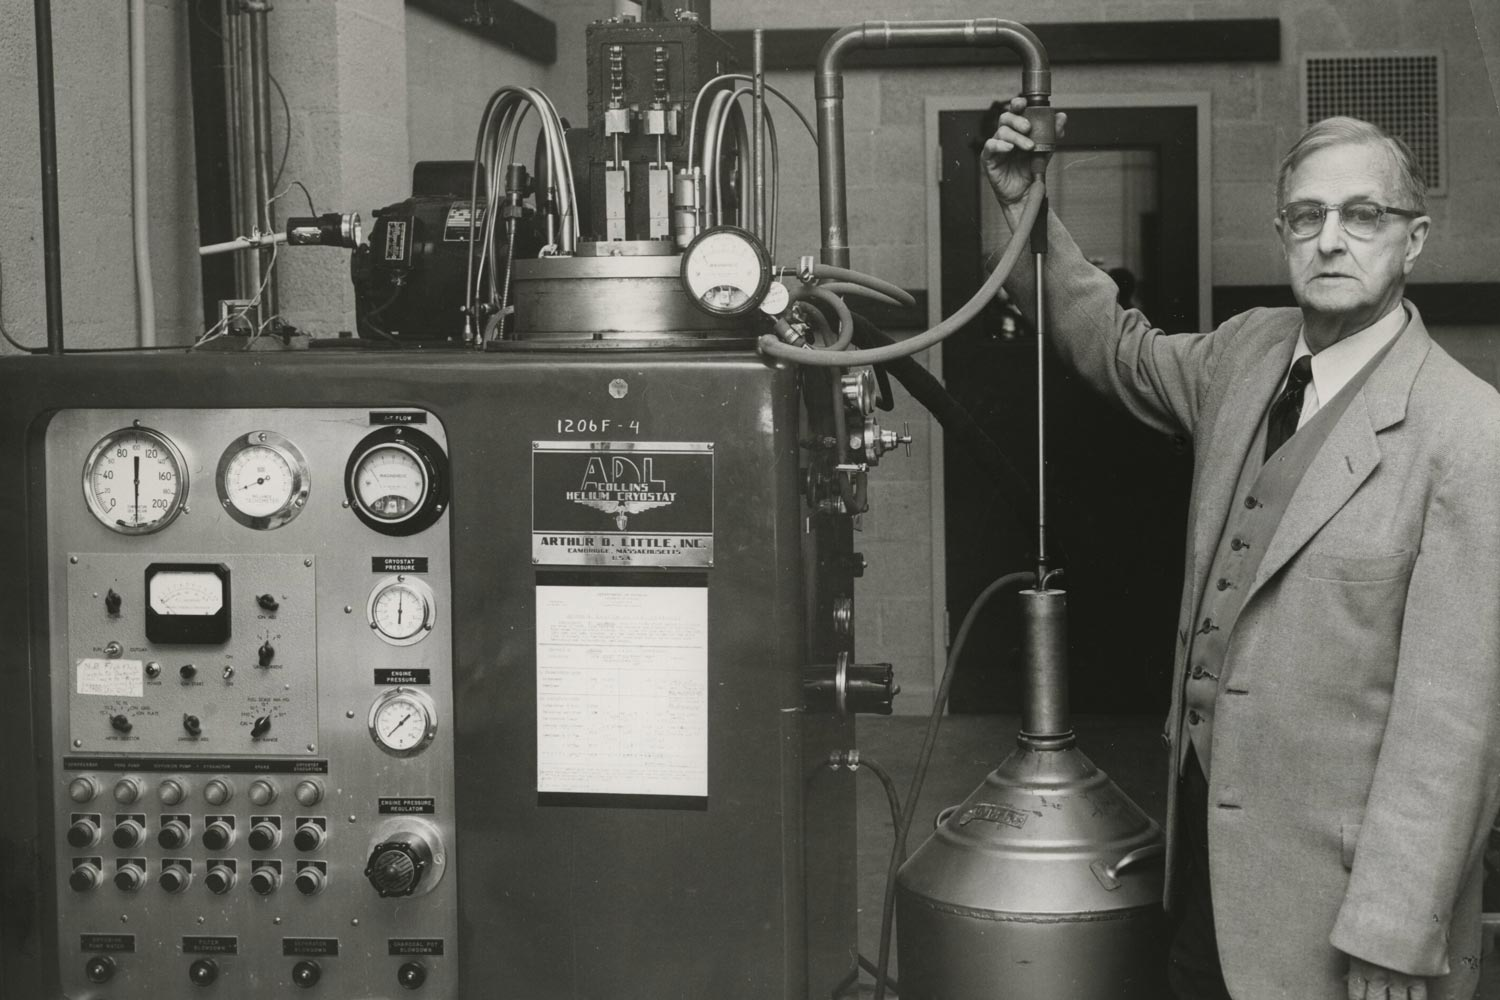 Physics professor Llewellyn G. Hoxton posed beside an apparatus for manufacturing liquid helium in 1957.  The Physics Department still hosts a lecture named in his honor.